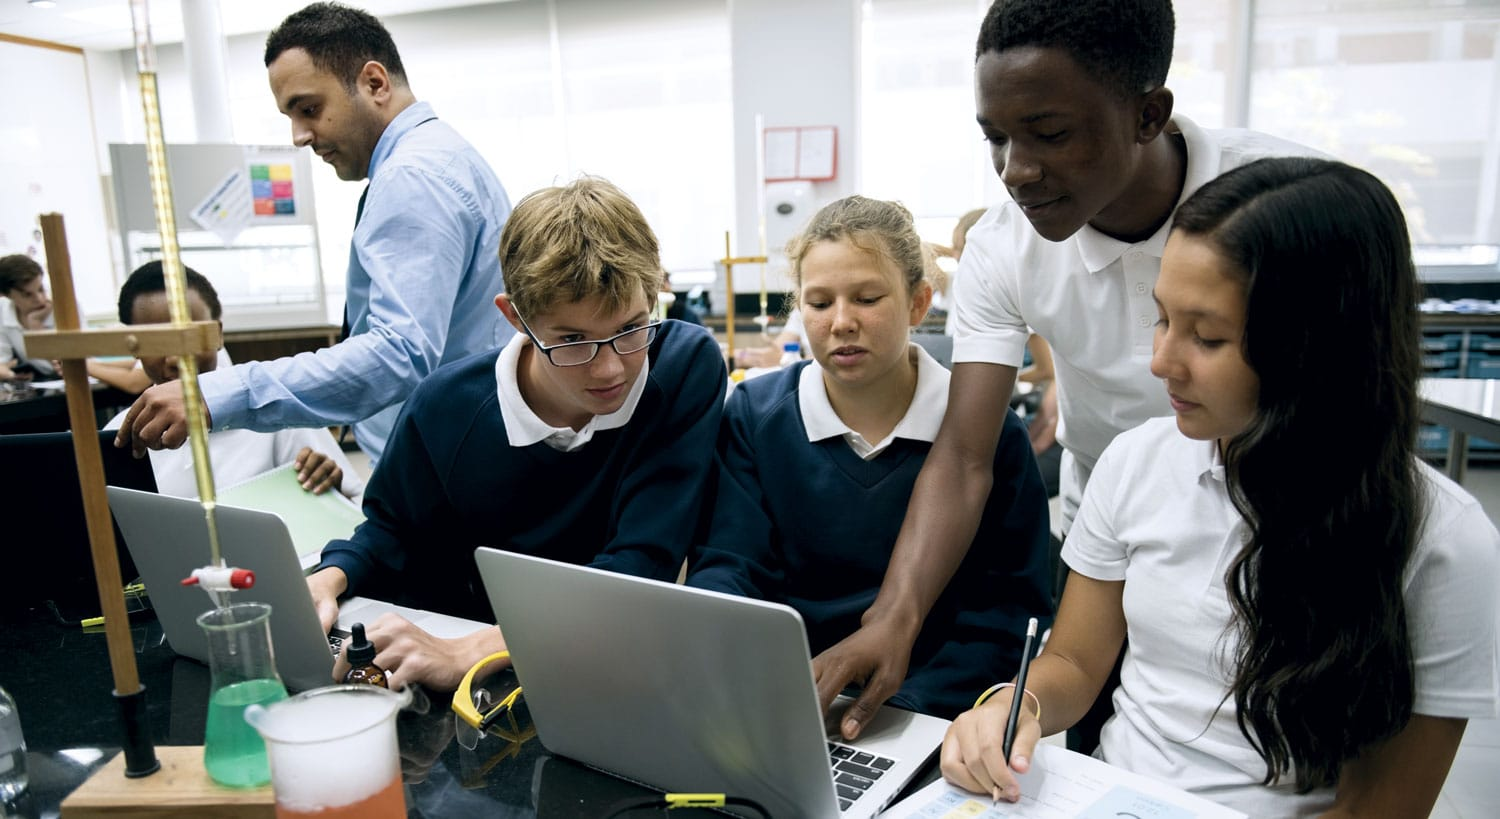 students work together science class laptop